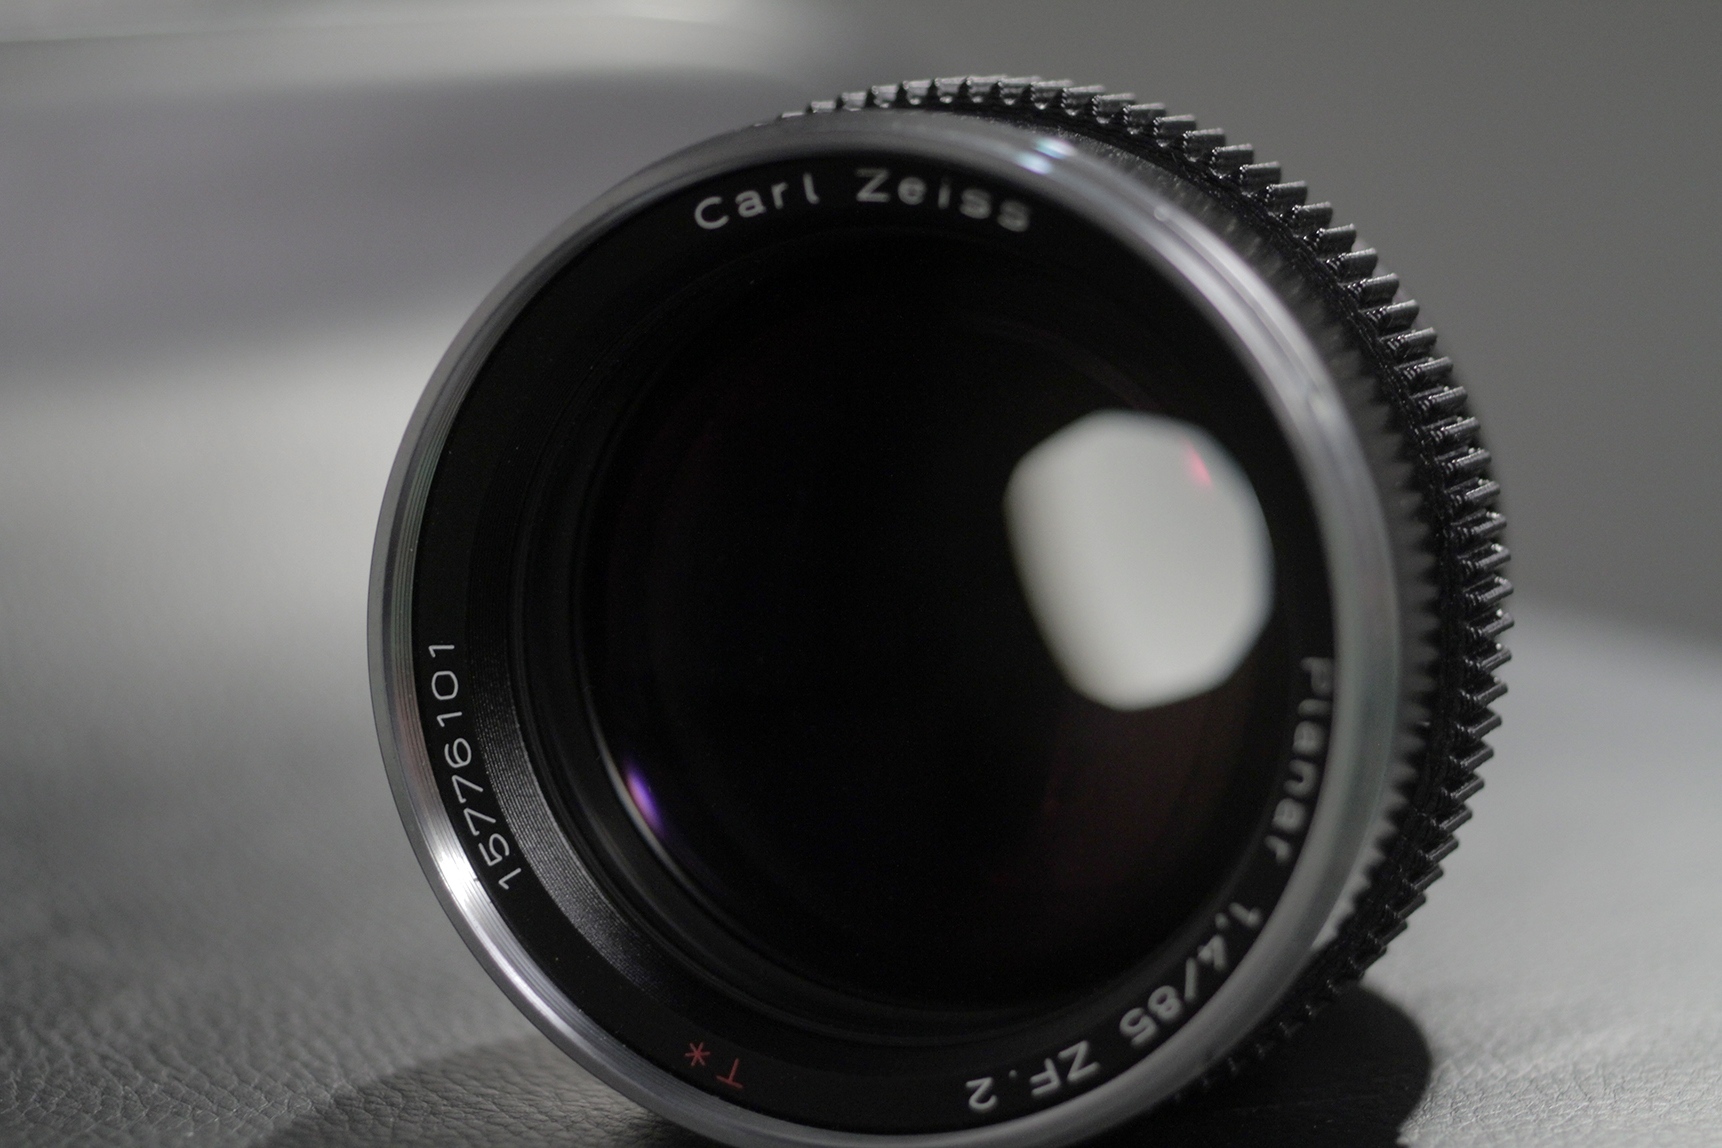 This is my Zeiss 85mm f/1.4 ZF mounted with a followfocusgears.com gear. Note how low profile the gear is.